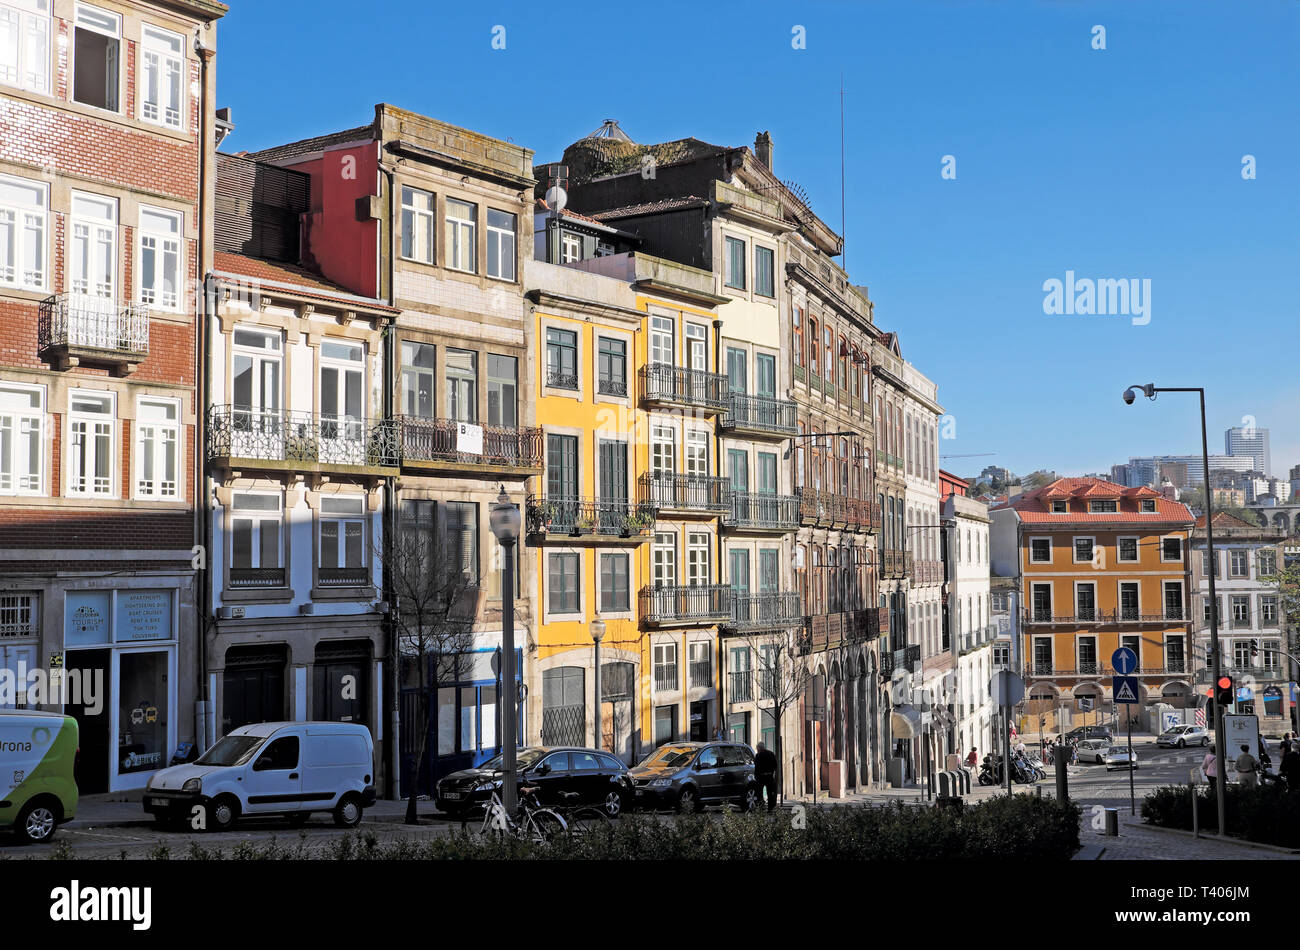 Porto houses homes property buildings architecture facade front of row of apartment buildings on street in Oporto Portugal Europe   KATHY DEWITT - Stock Image